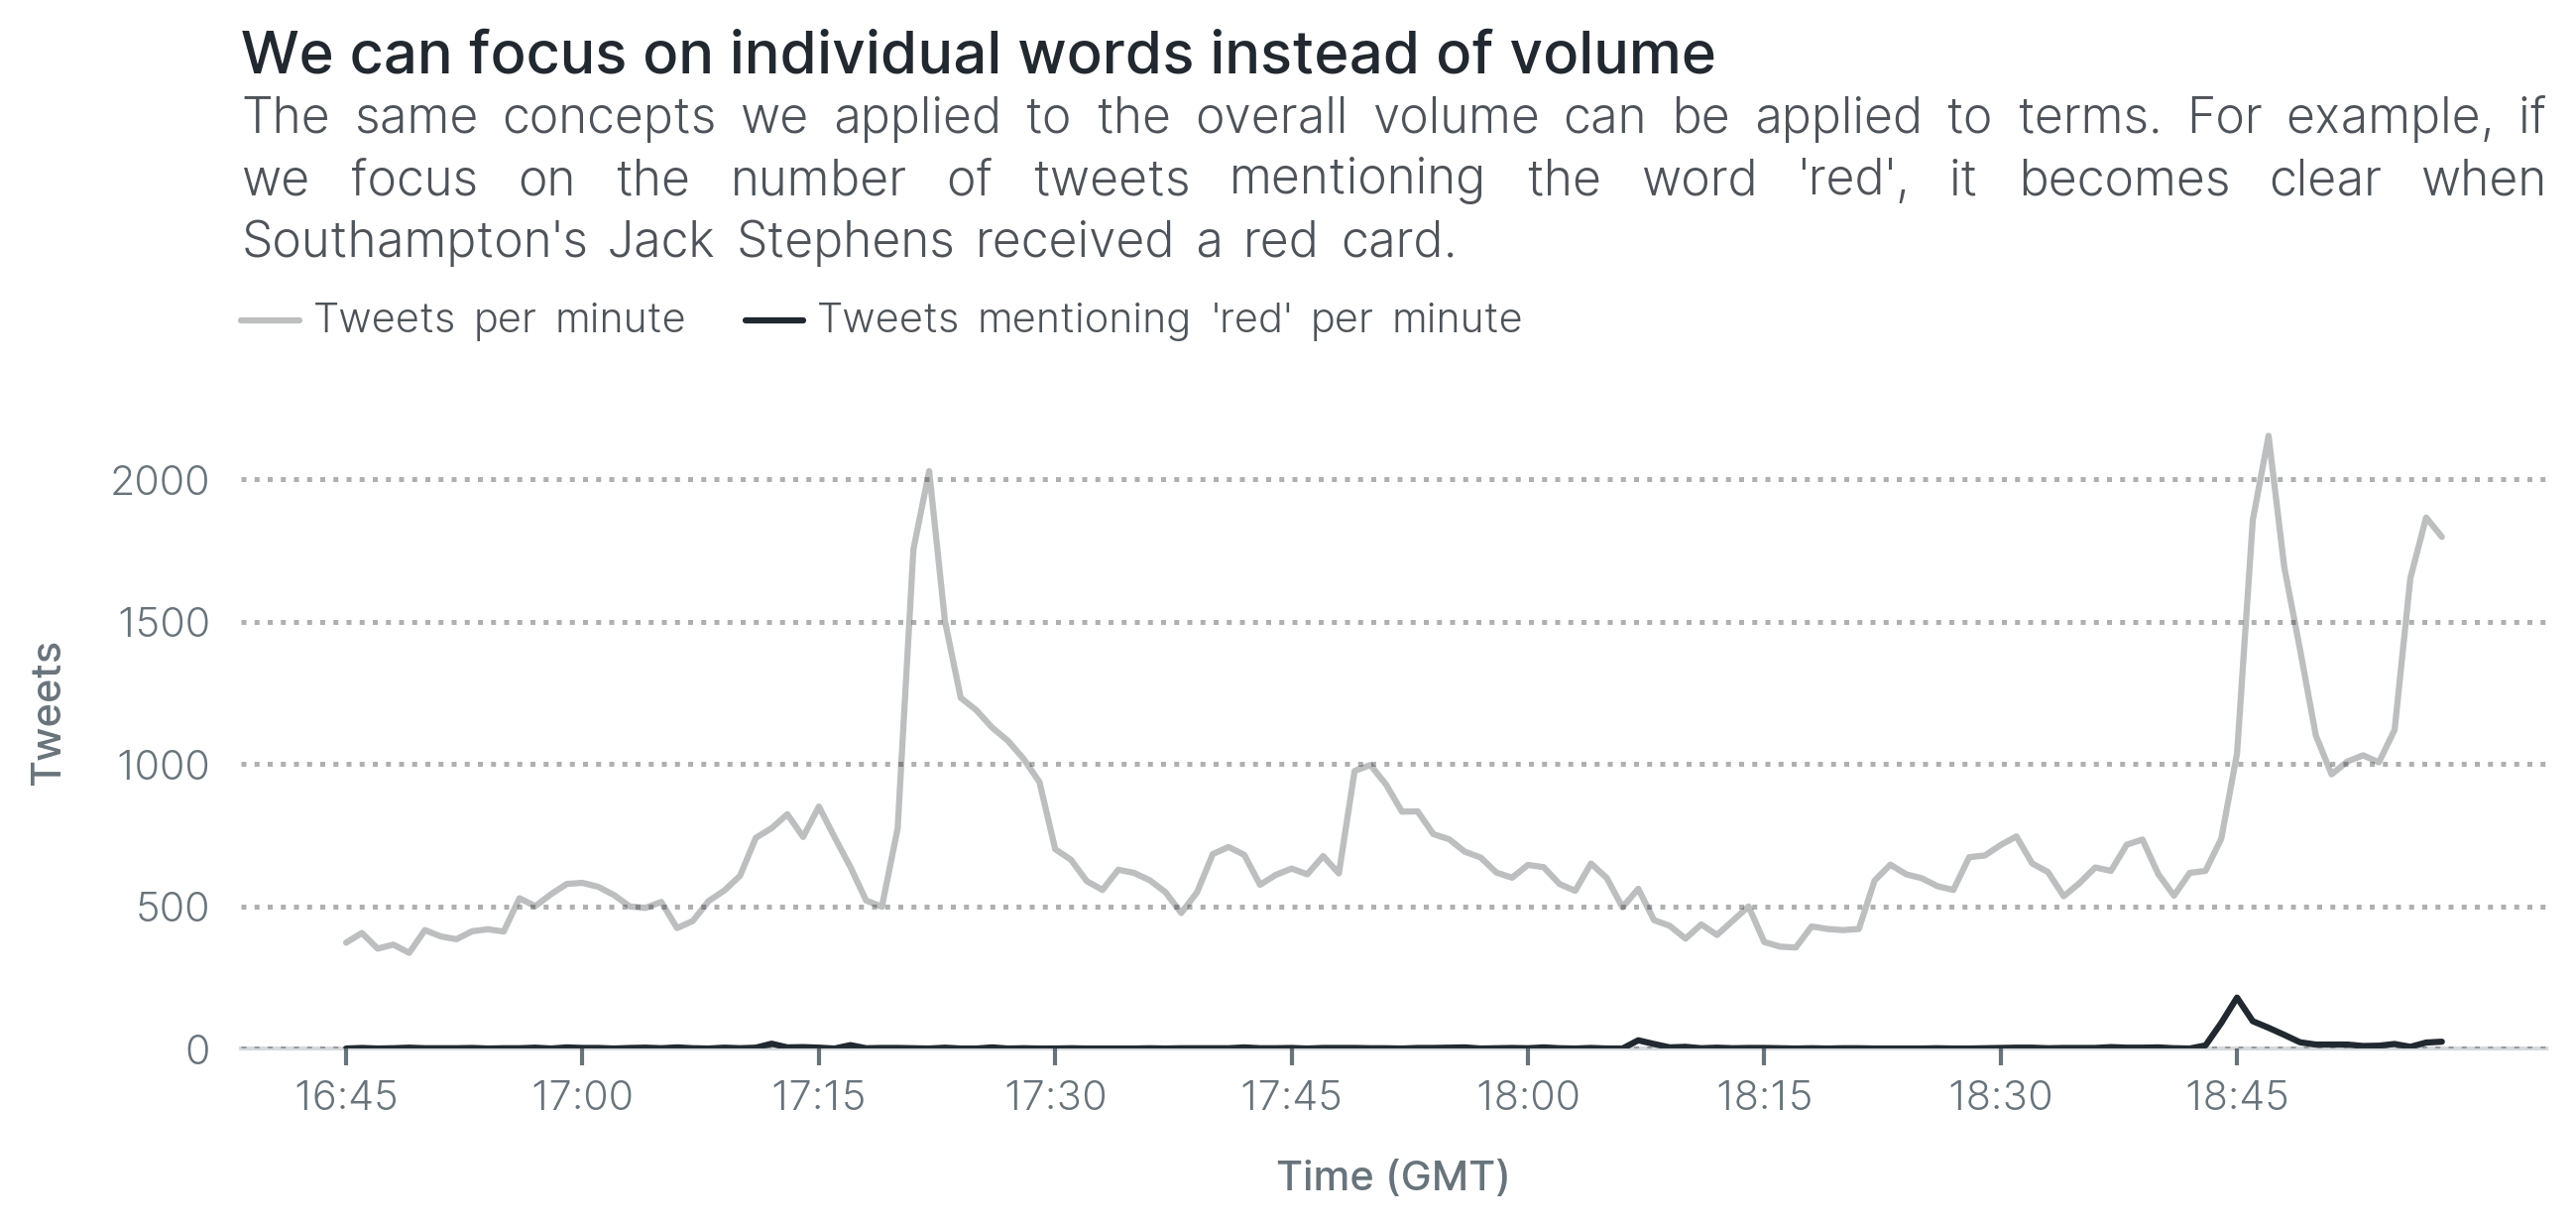 We can focus on individual words instead of volume. The same concepts we applied to the overall volume can be applied to terms. For example, if we focus on the number of tweets mentioning the word 'red', it becomes clear when Southampton's Jack Stephens received a red card.